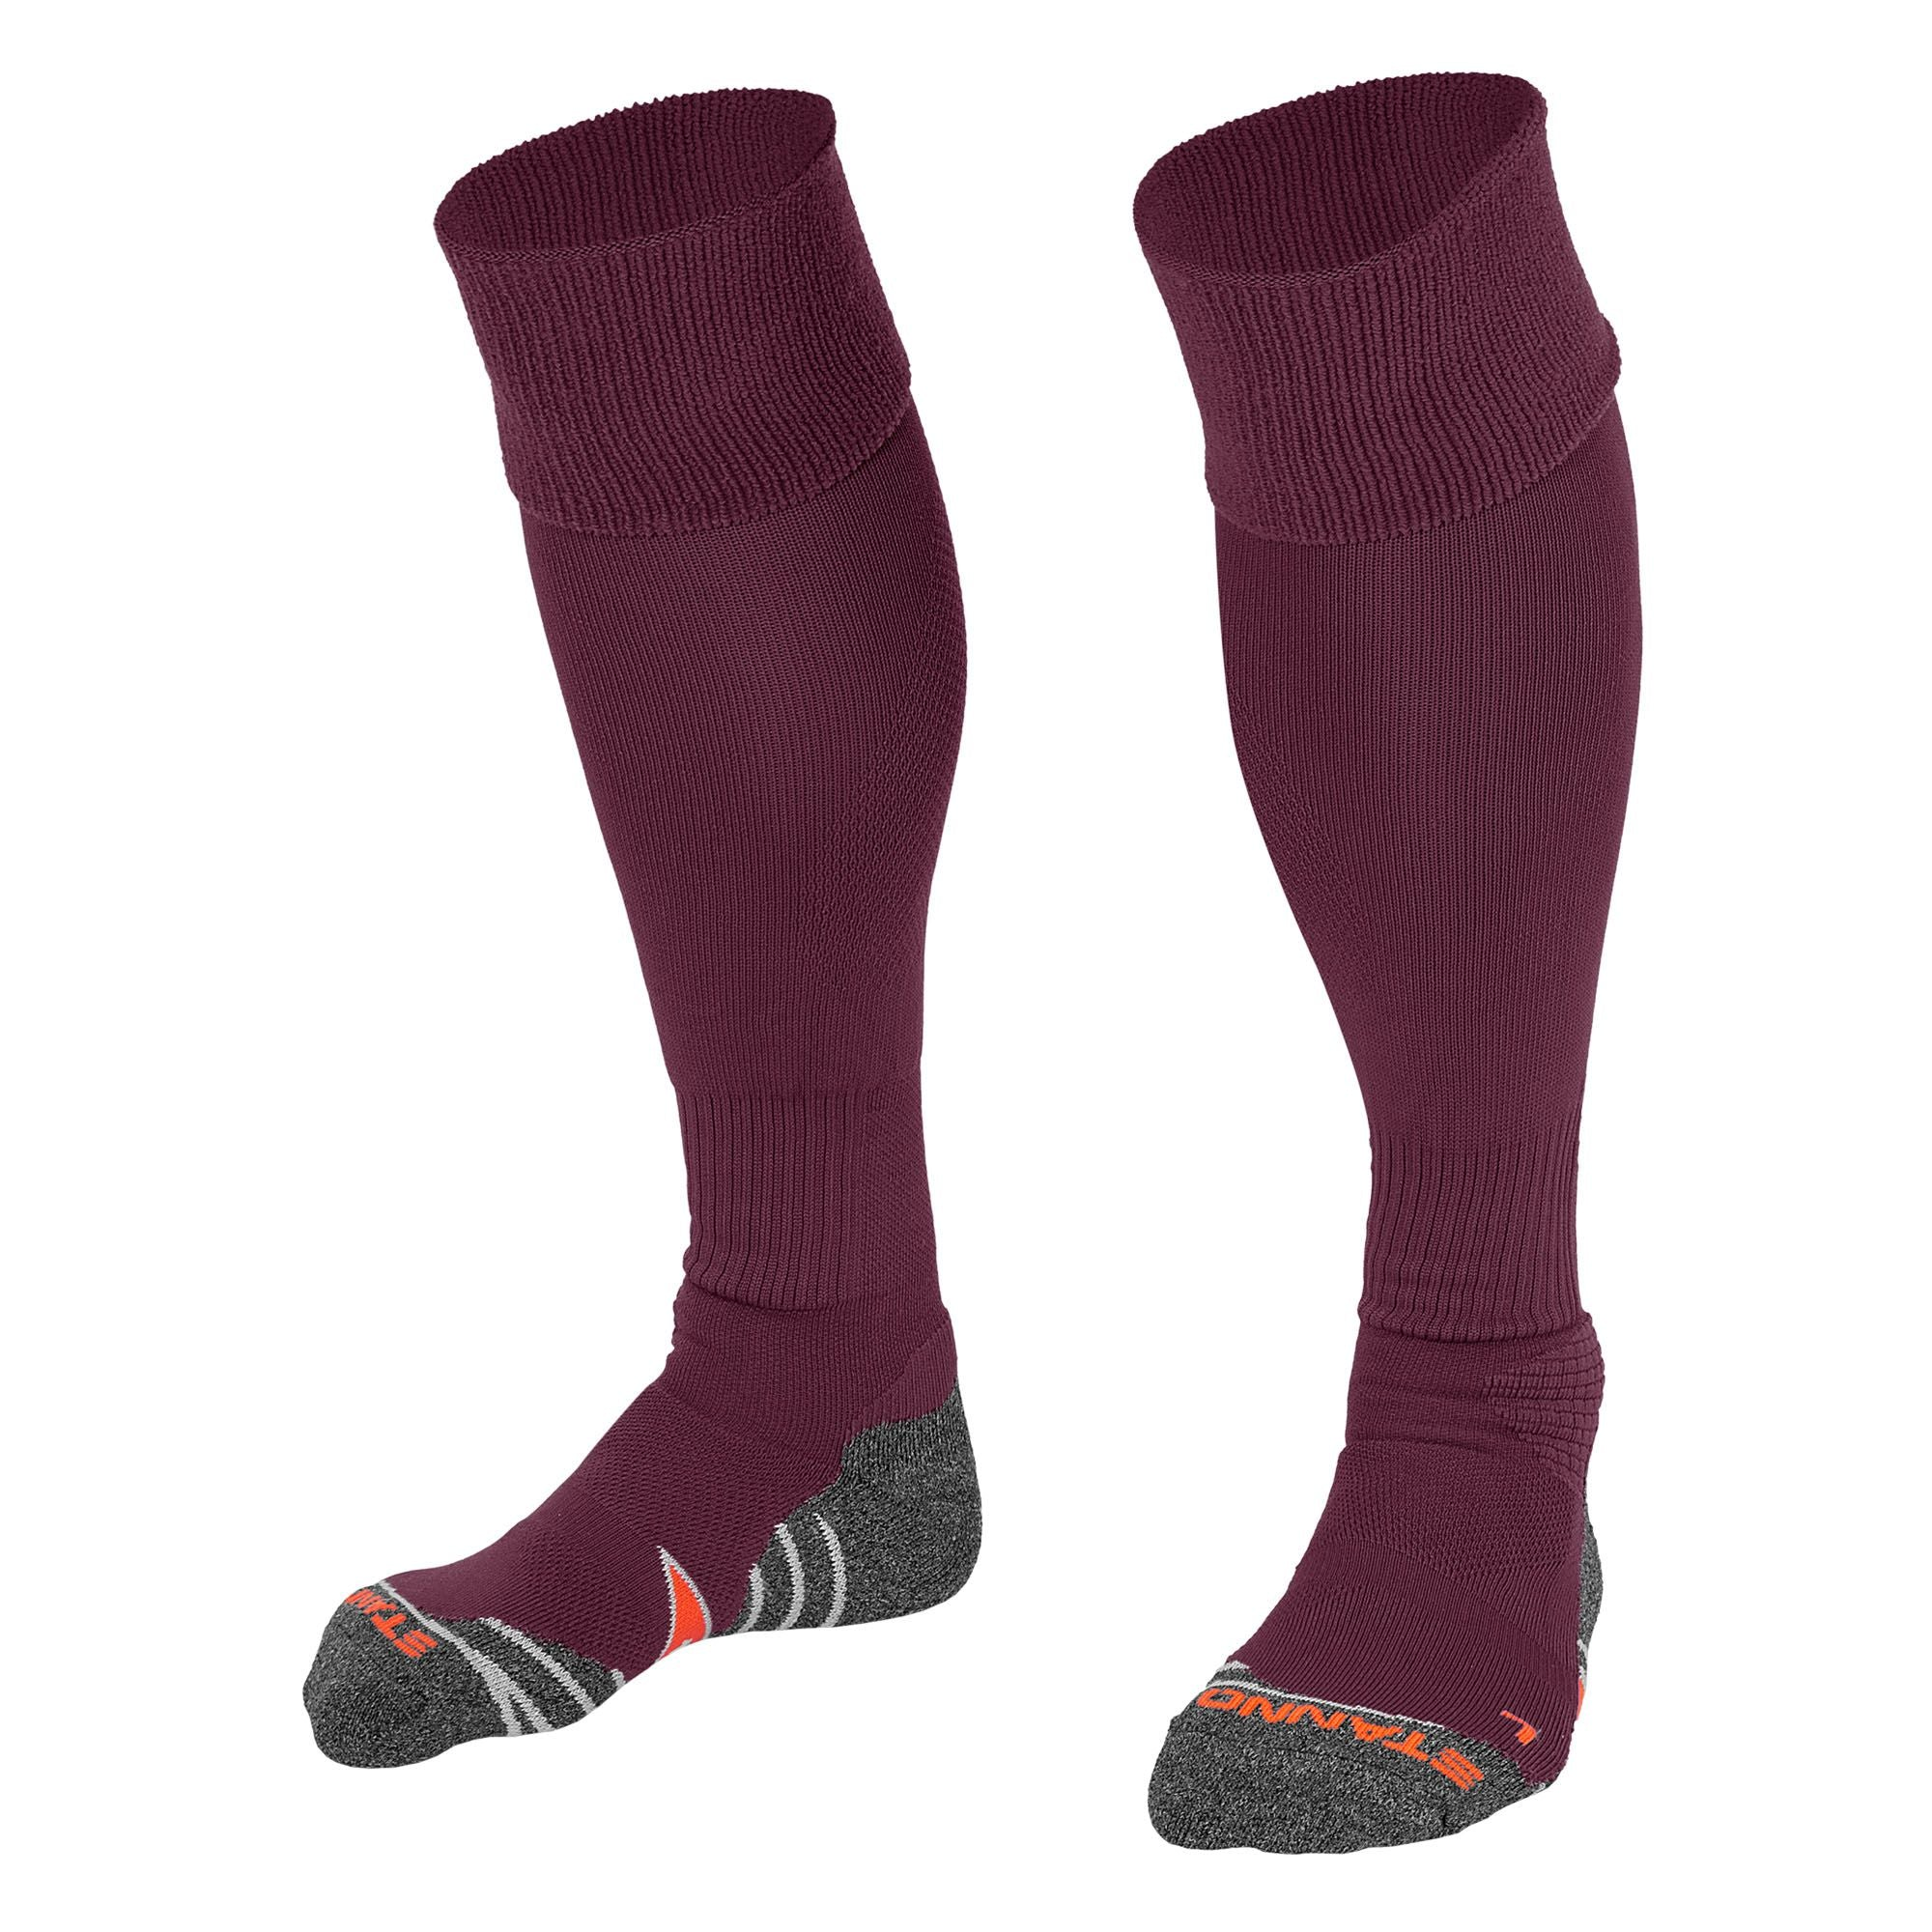 Stanno Uni Sock II football sock in maroon with grey, white and orange sole